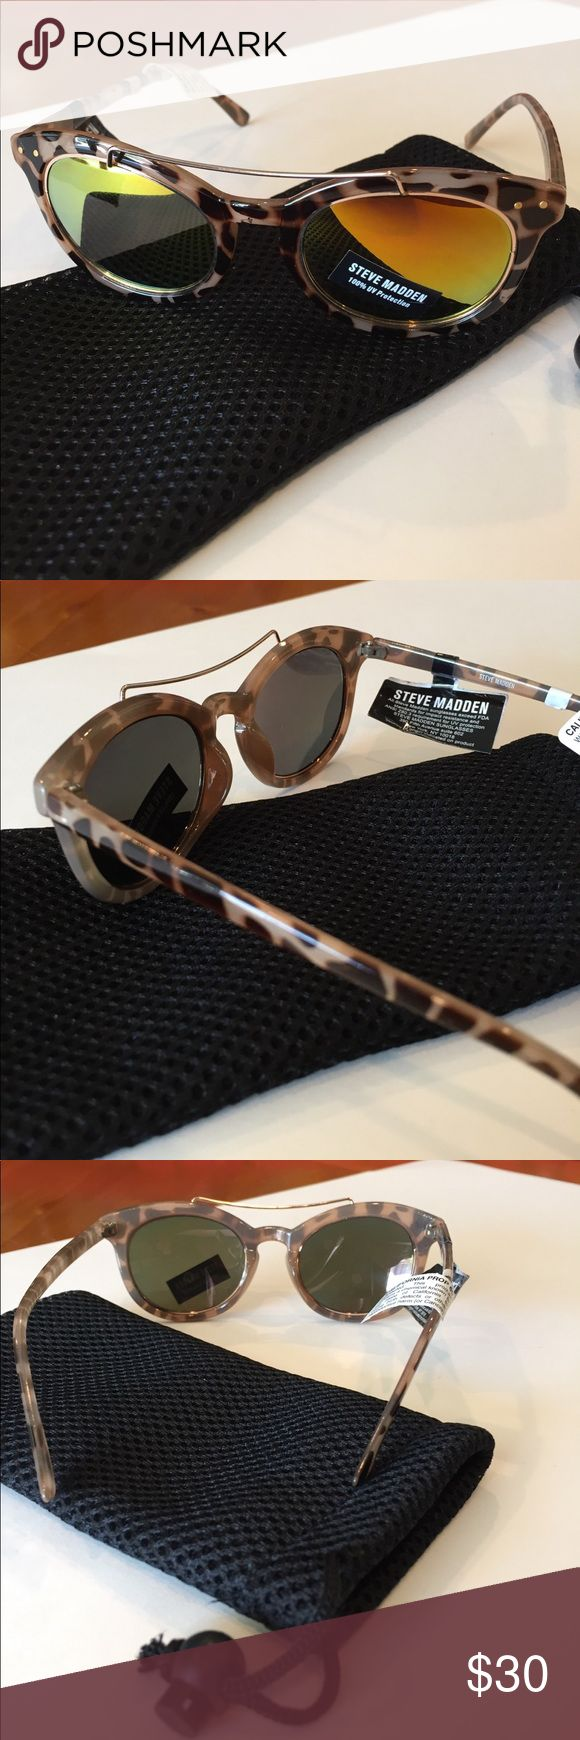 Steve Madden Tortoise Women's Sunglasses /New Elegant tortoise SM sunglasses with reflective gold lens and 100% UV protection ......comes a nice mesh pouch to keep them safe, new but no tags Steve Madden Accessories Sunglasses